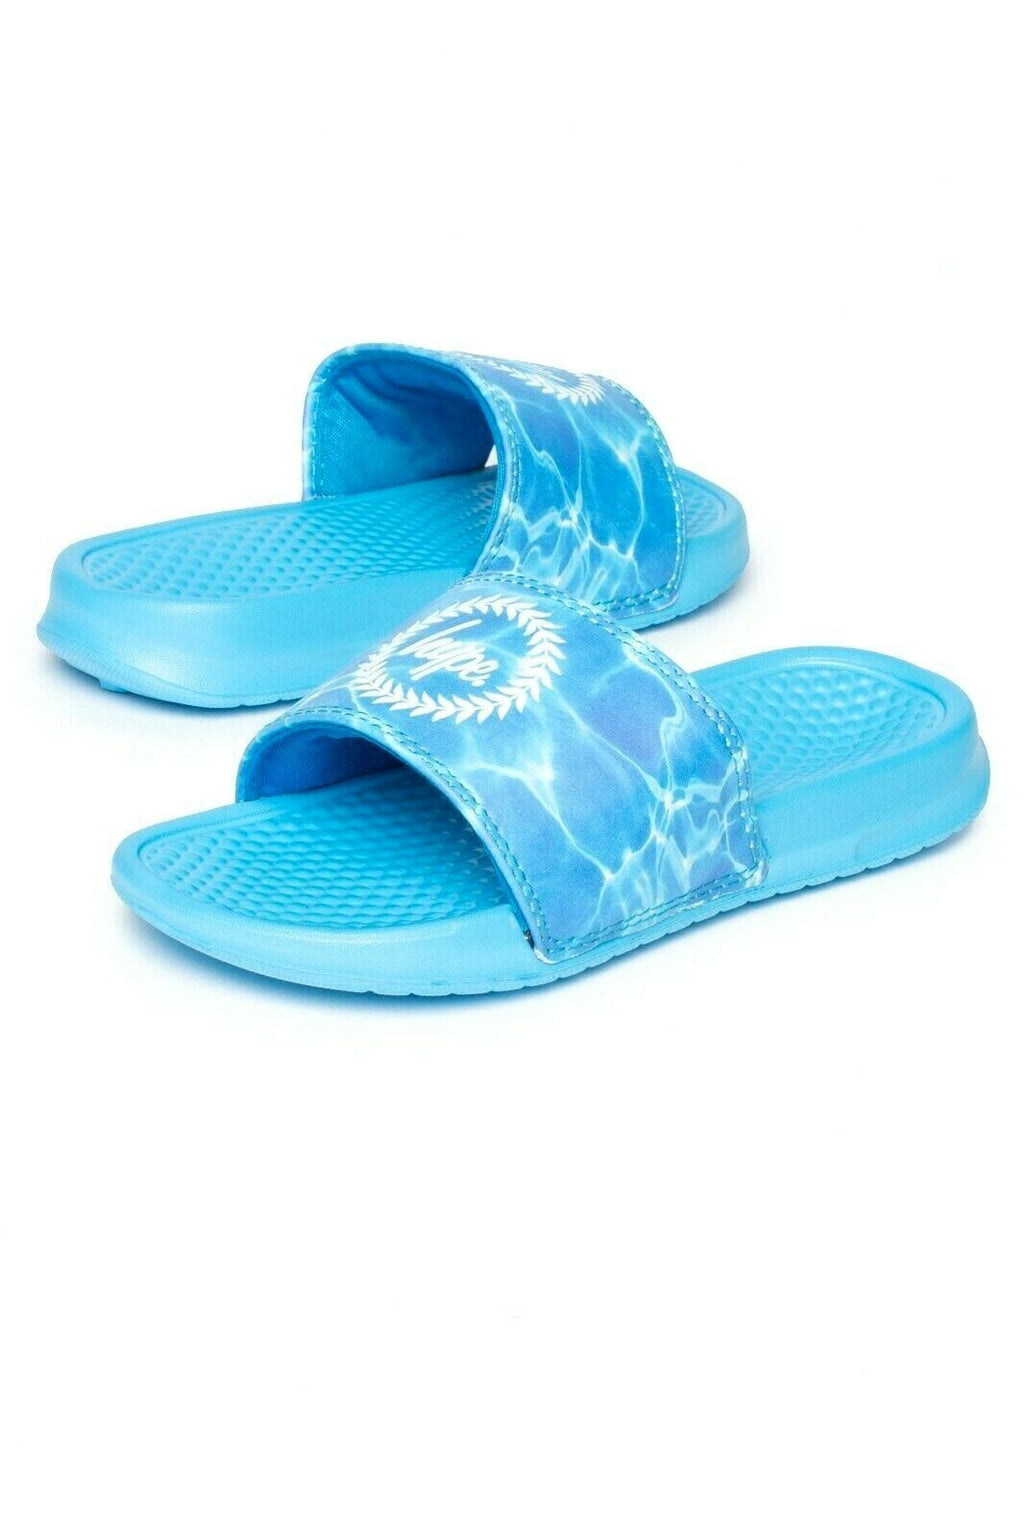 Pool Kids Sliders - Blue